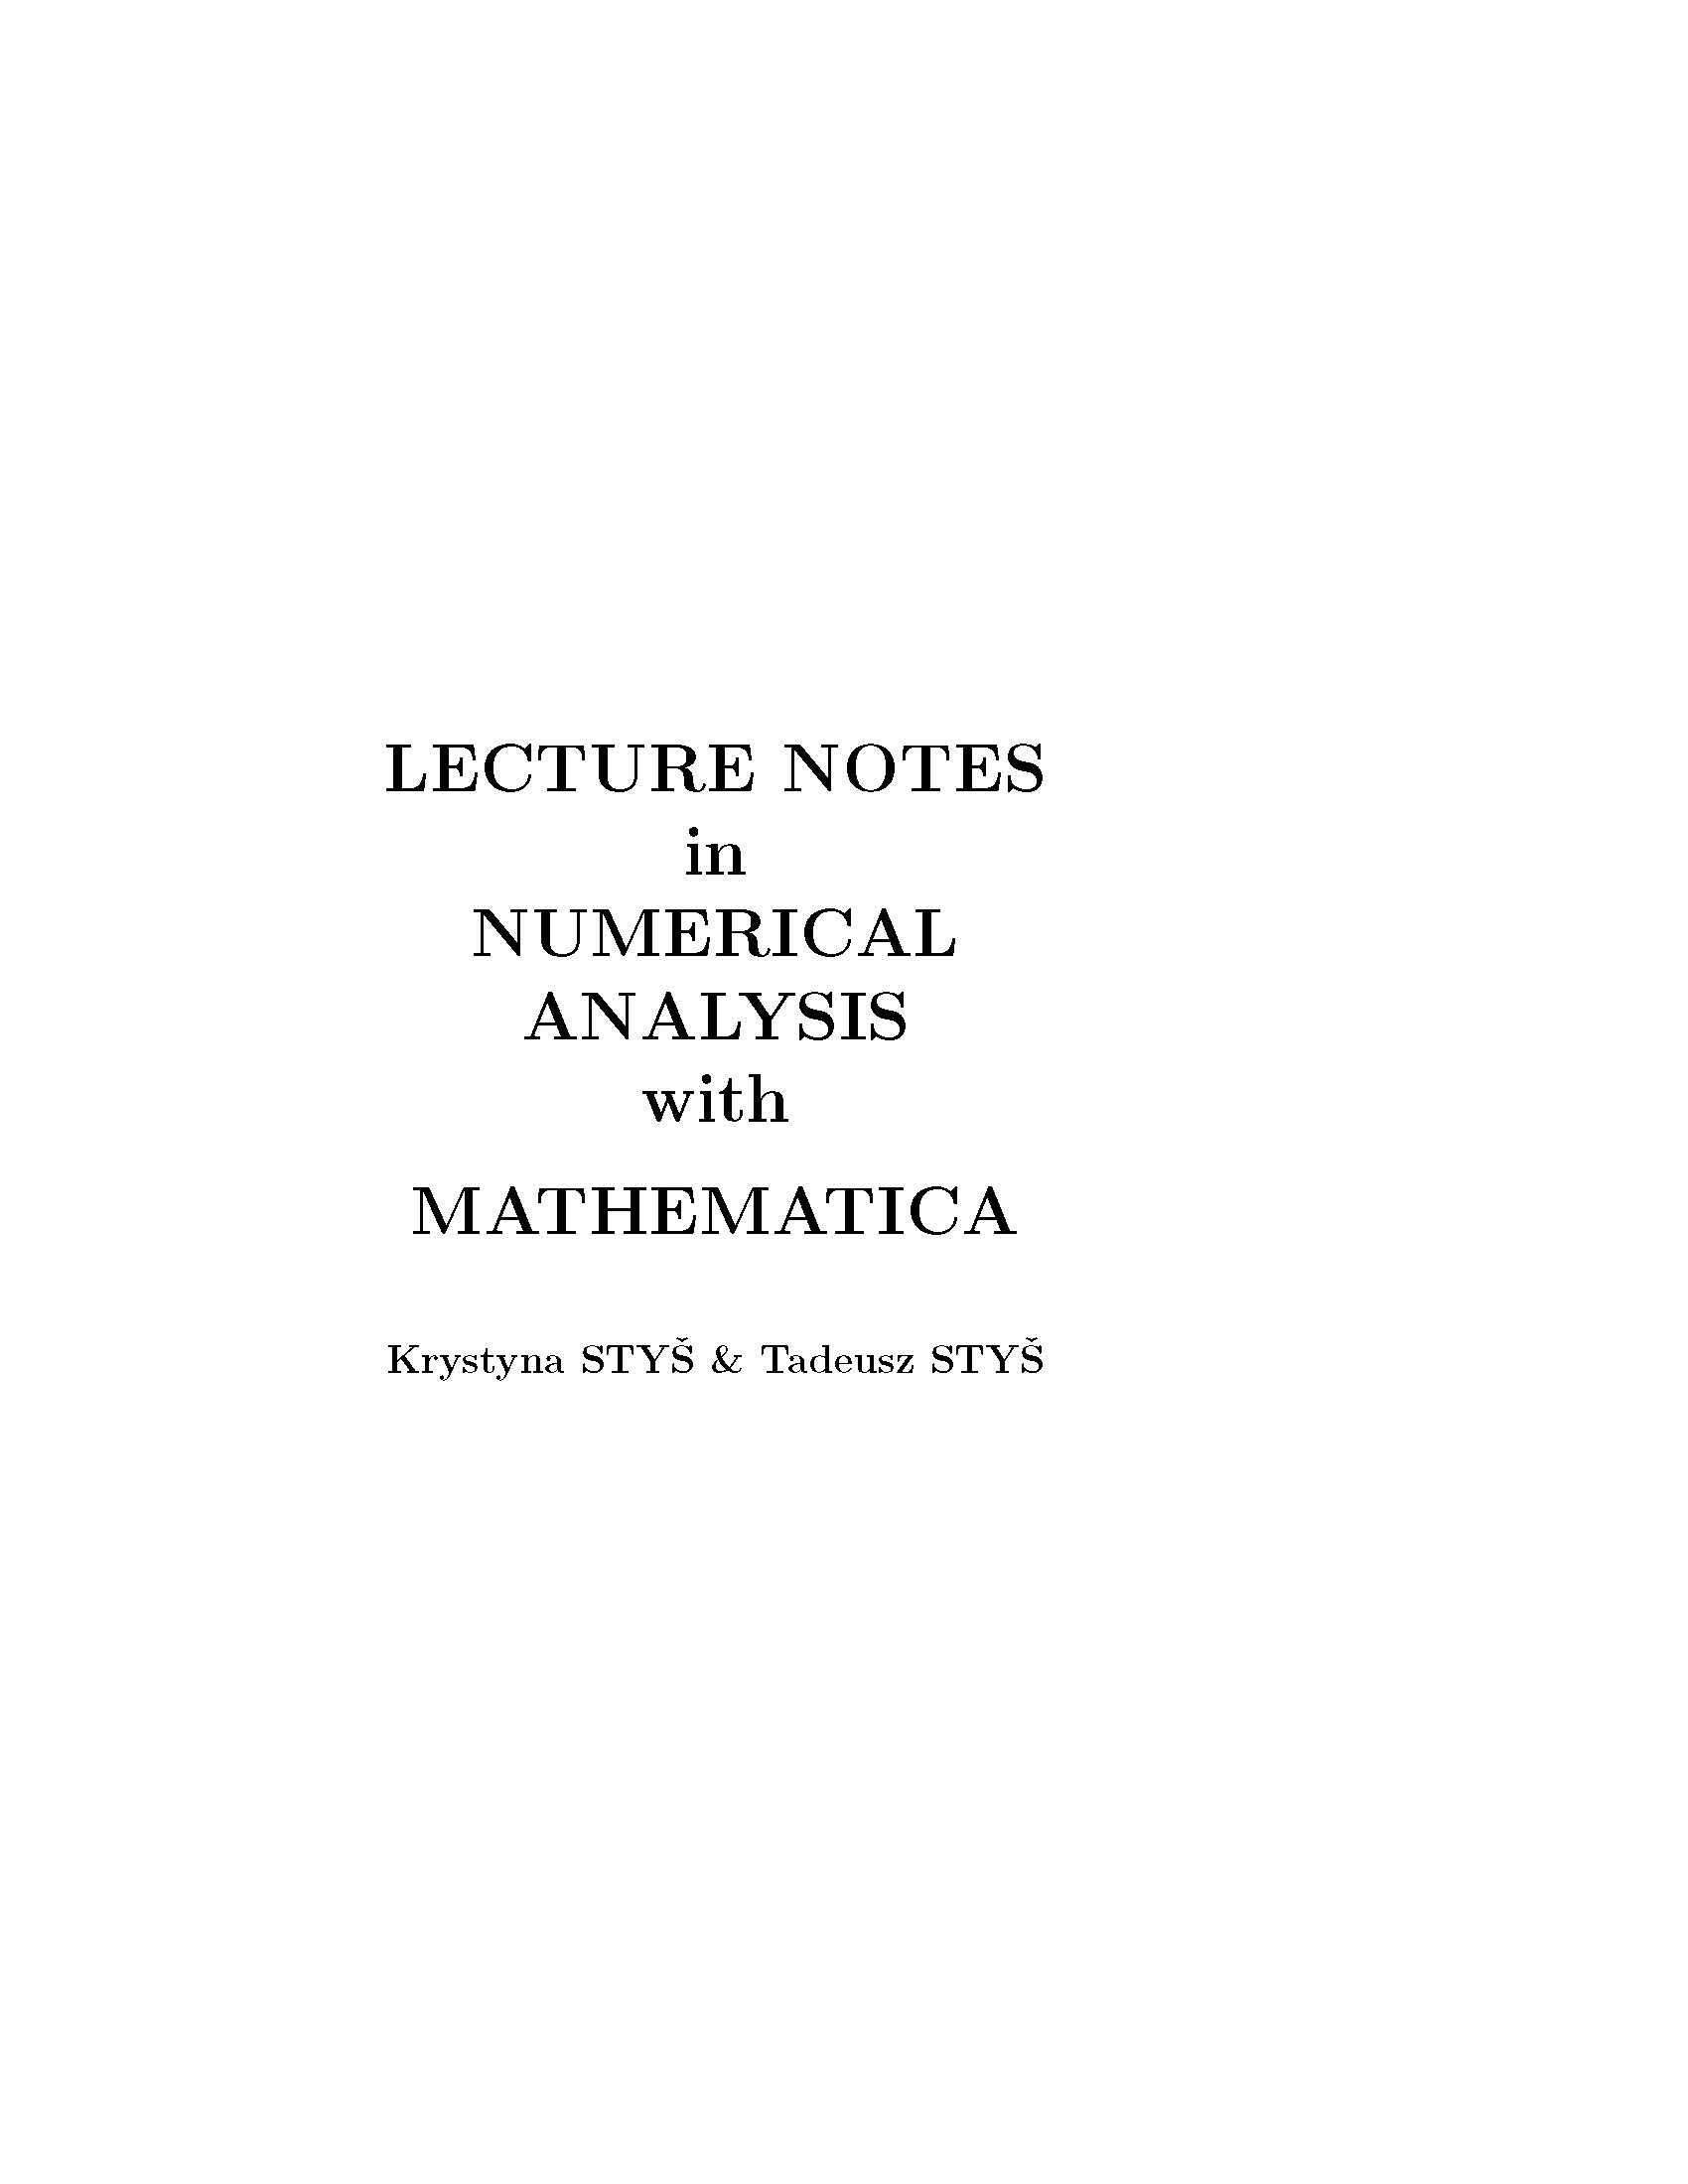 Sample - Lecture Notes in Numerical Analysis with Mathematica